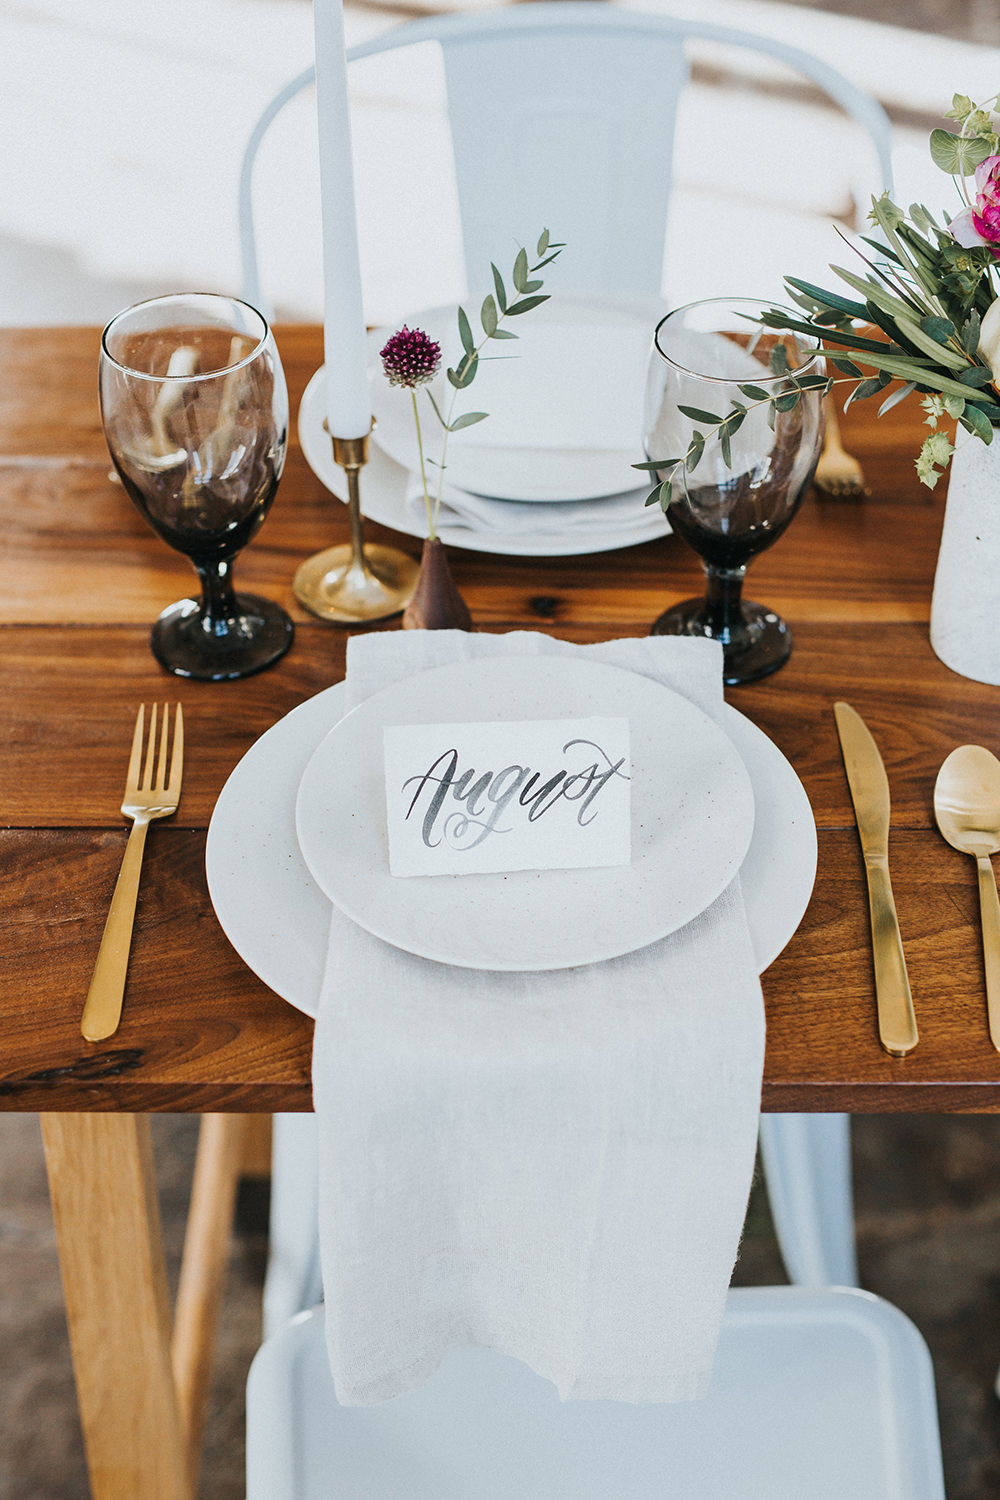 simple wedding place settings - photo by Jacoby Photo and Design http://ruffledblog.com/modern-romantic-loft-wedding-inspiration